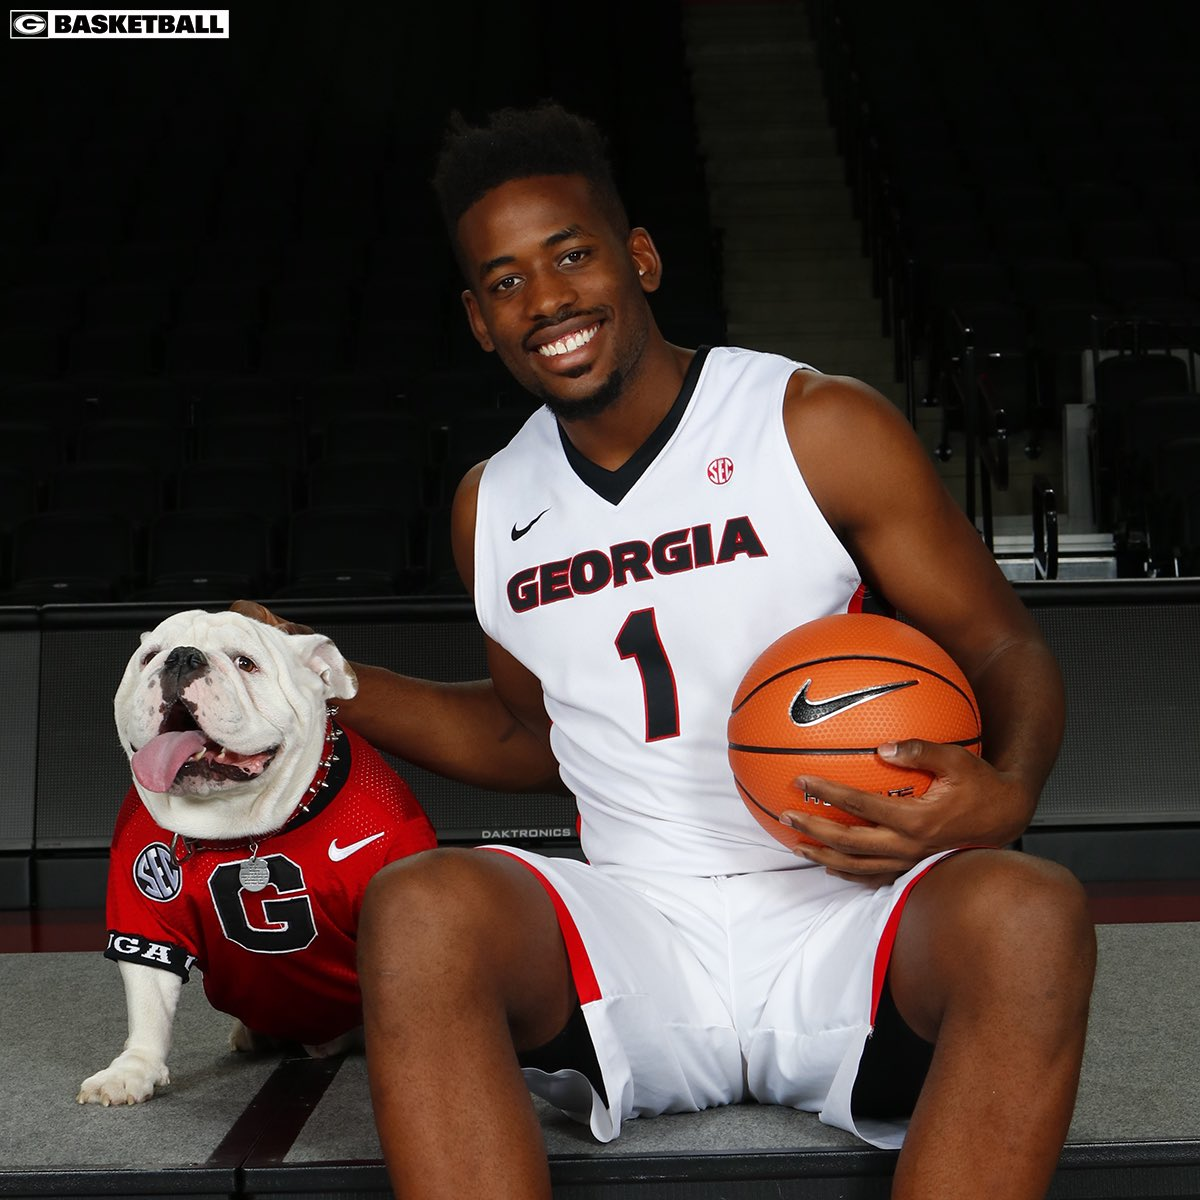 Big smiles when the big dog, UGA X, shows up for team photo day.  #CommitToTheG <br>http://pic.twitter.com/N5vhNniIKh